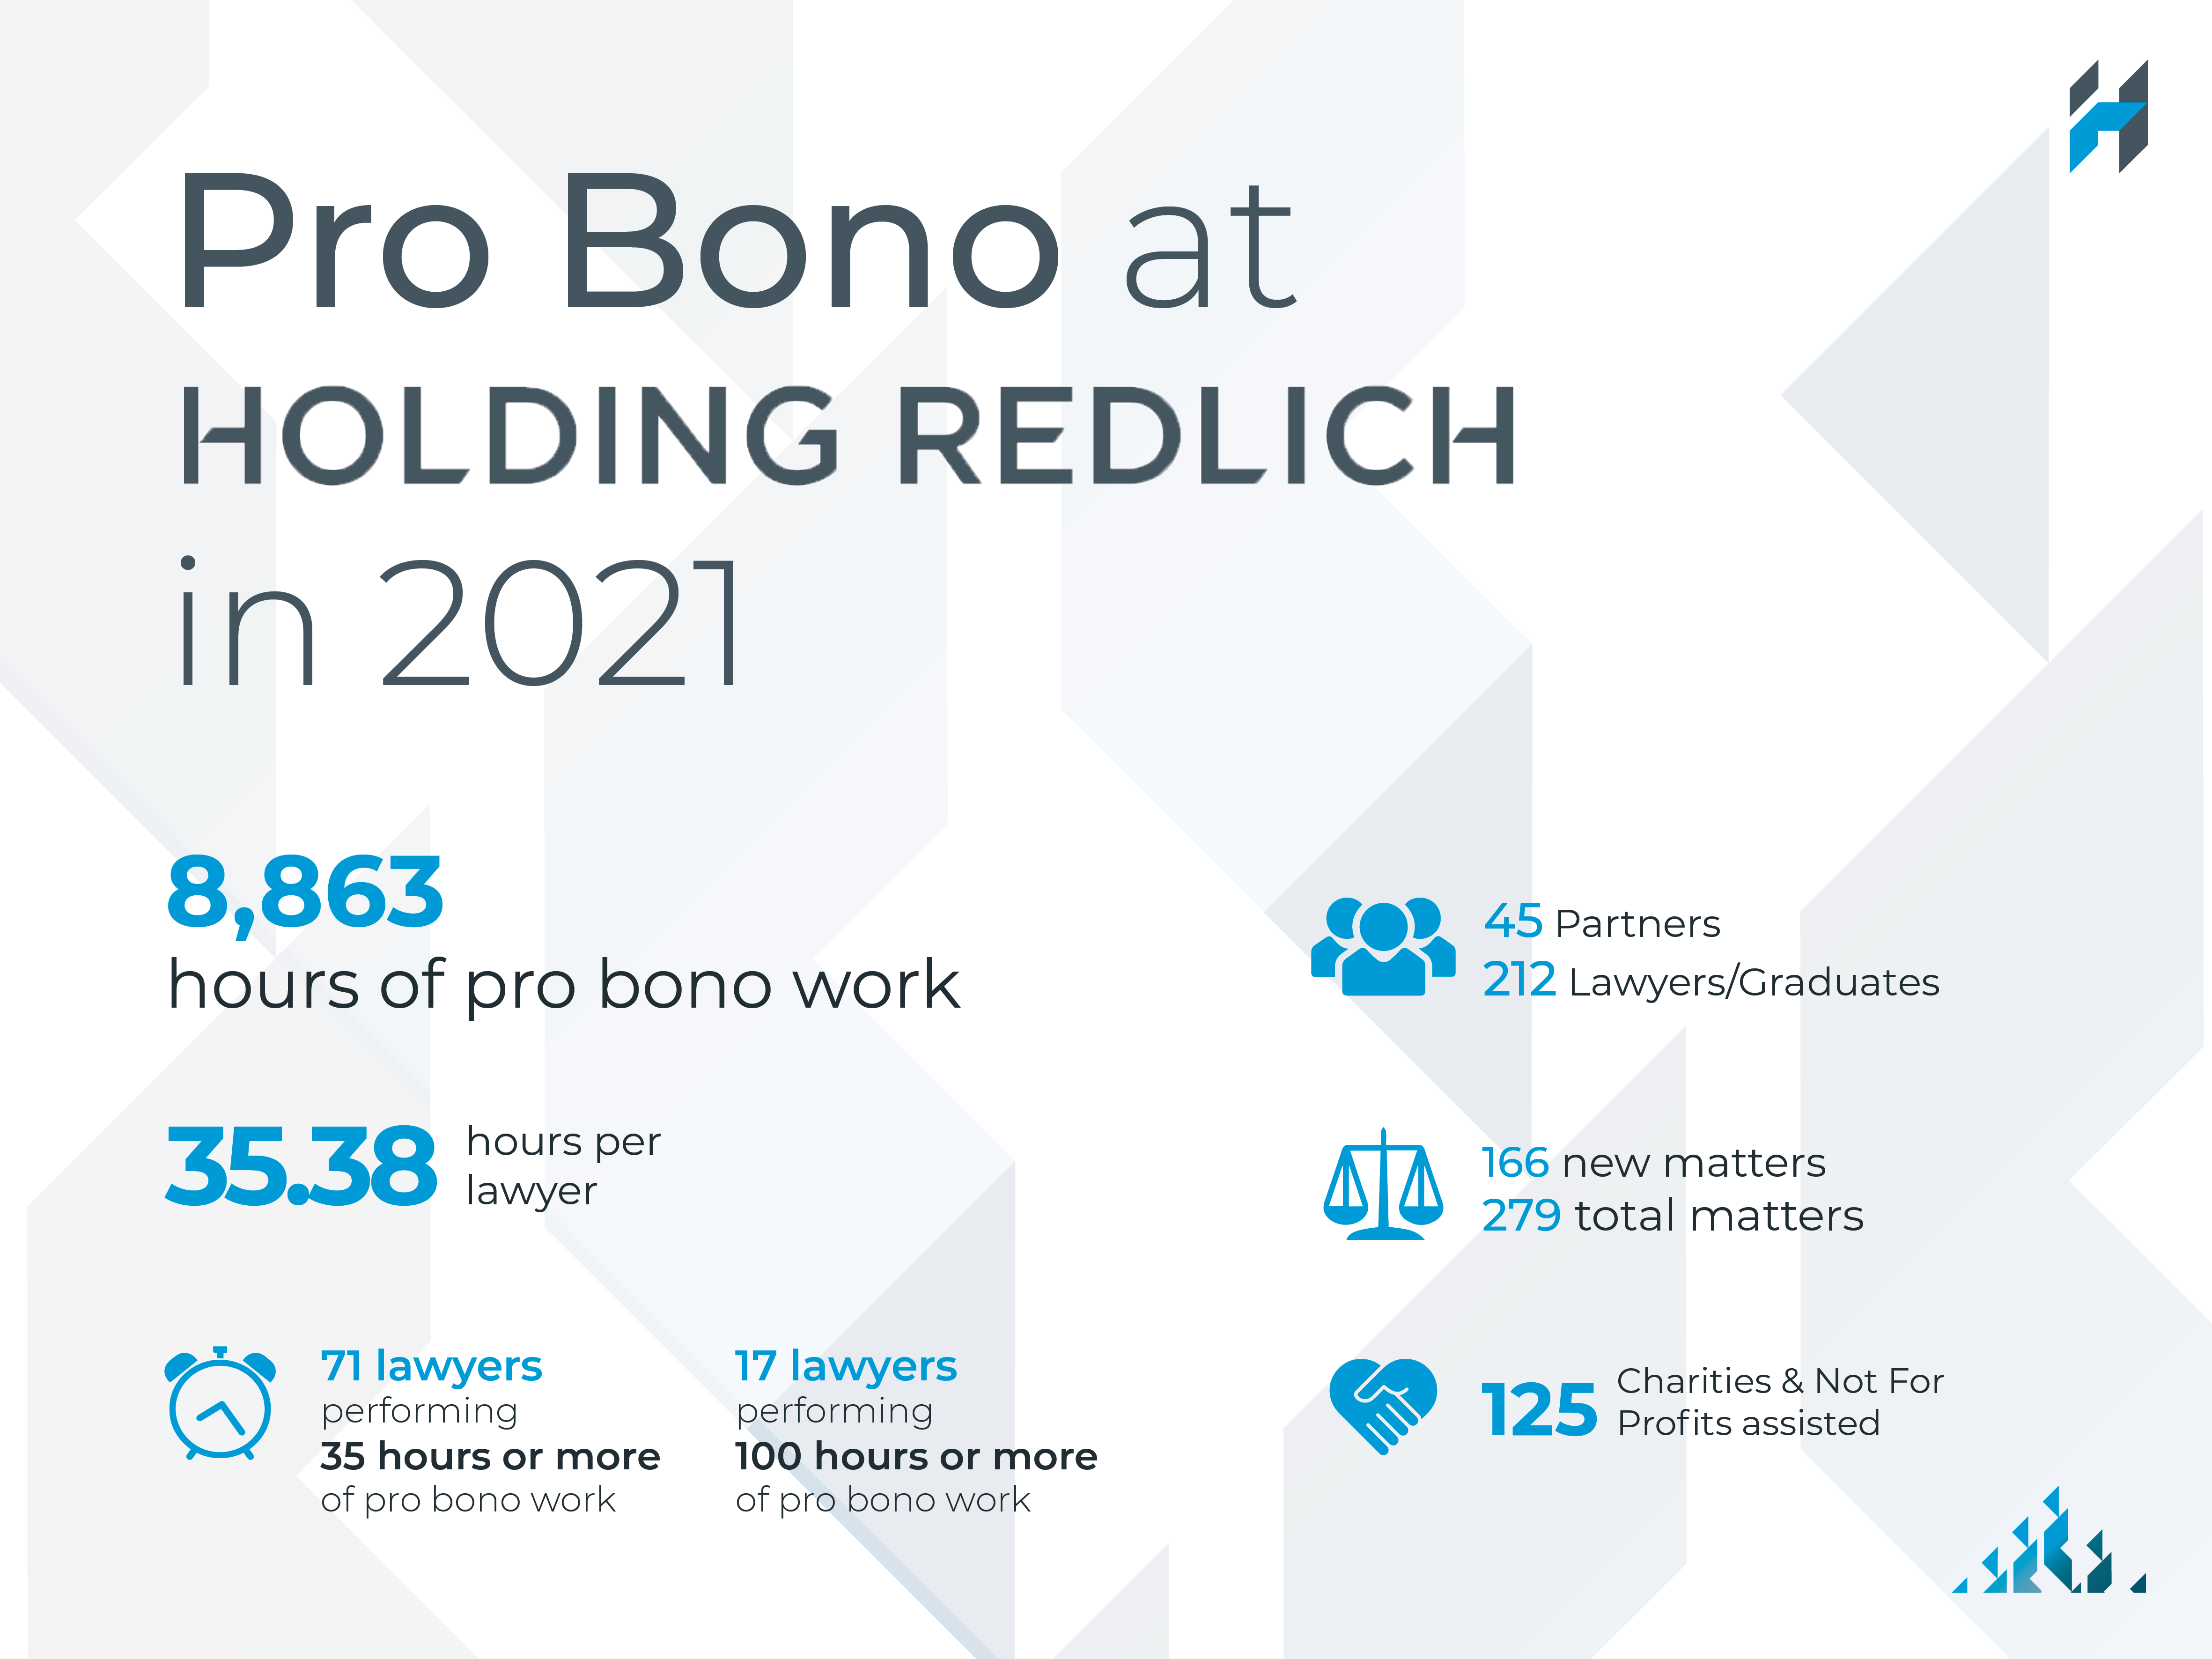 Holding Redlich contributes a record 8,863 pro bono hours in FY2021